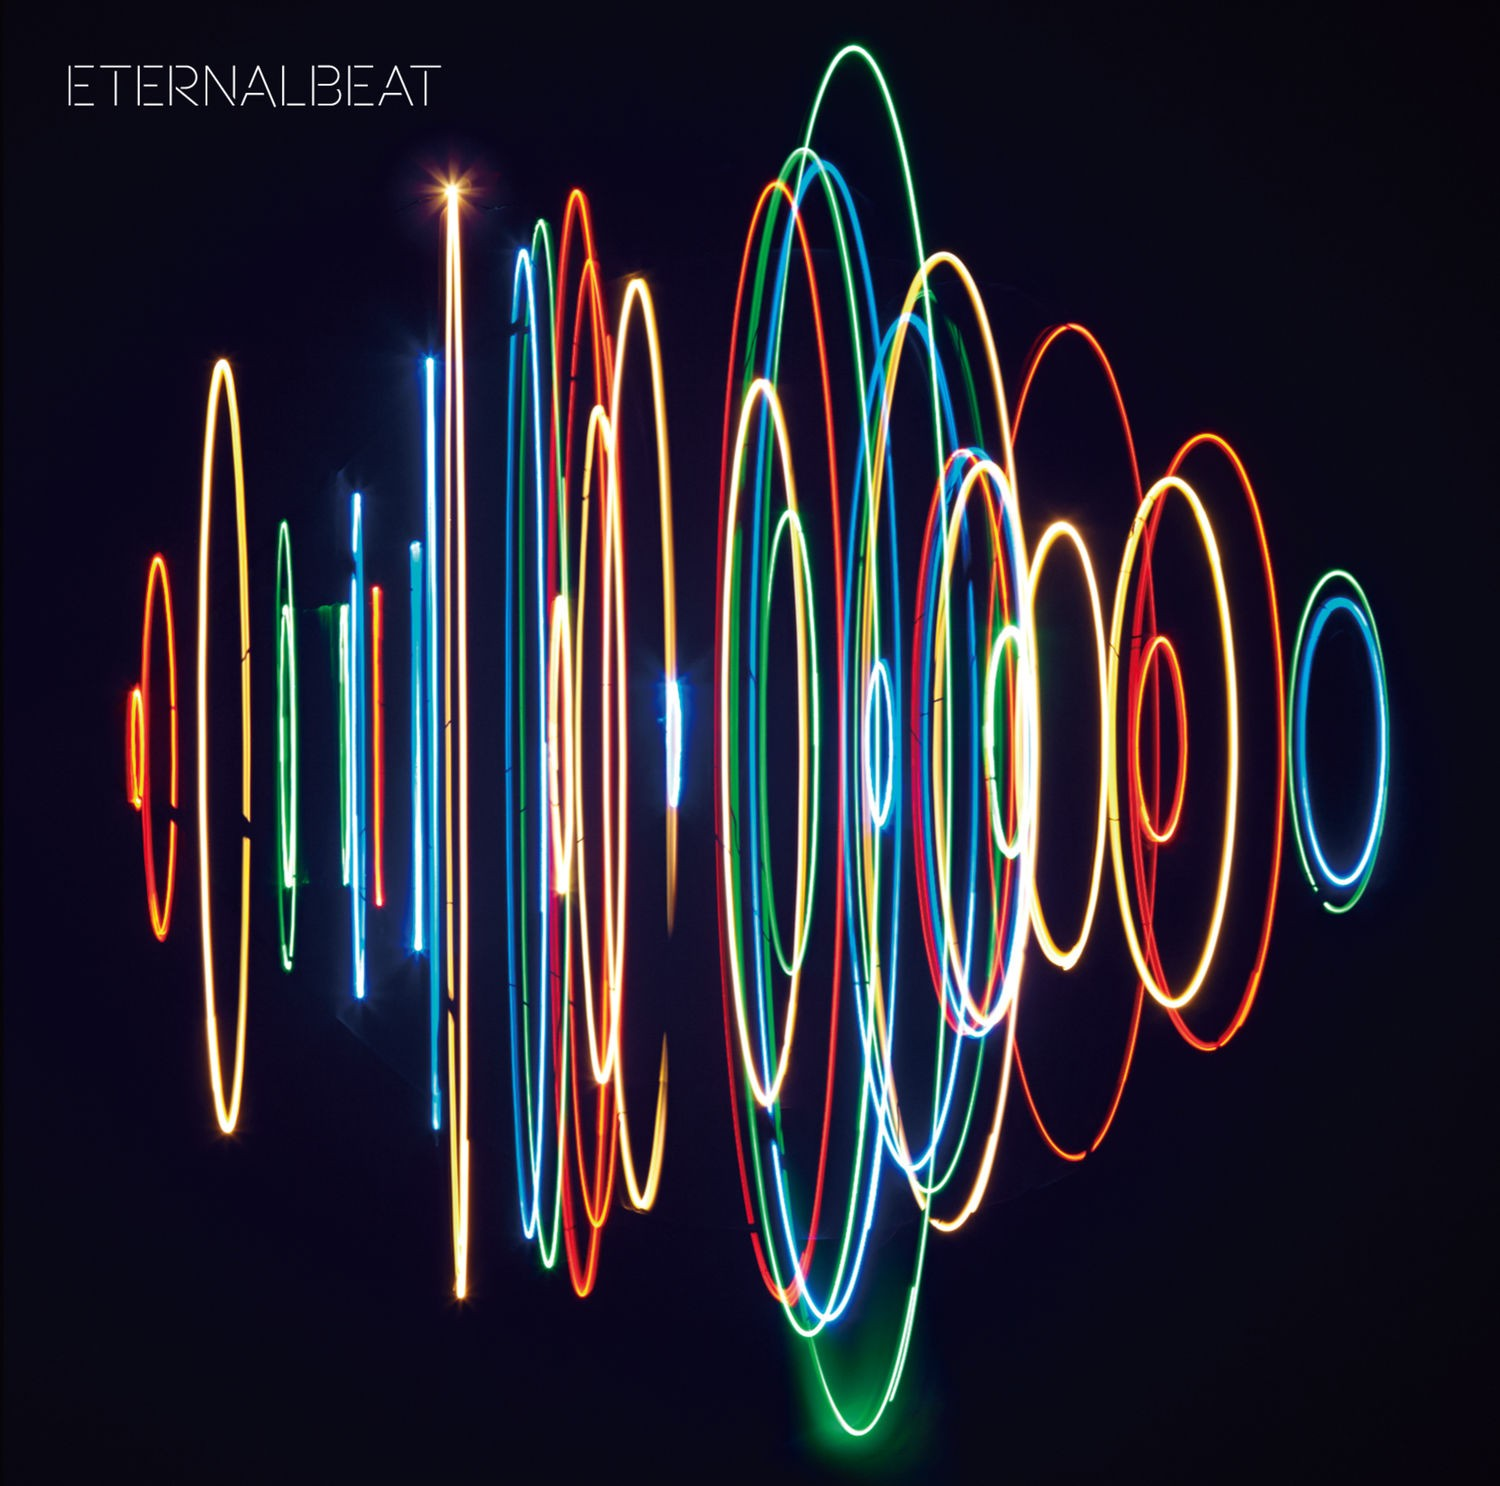 ETERNALBEAT